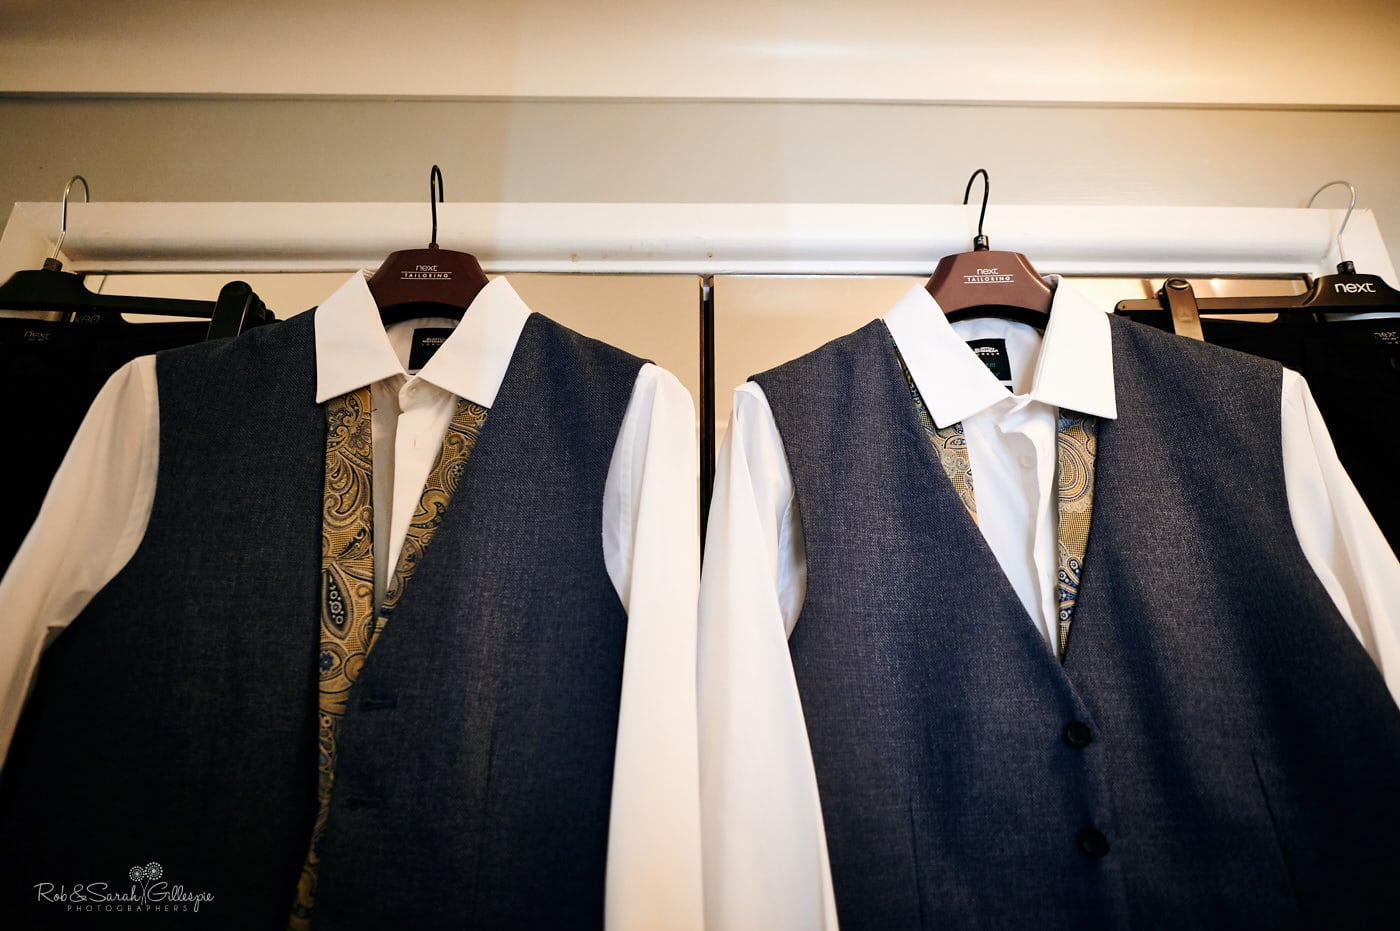 Two suits and shirts for grooms at Moor Hall hotel same-sex wedding